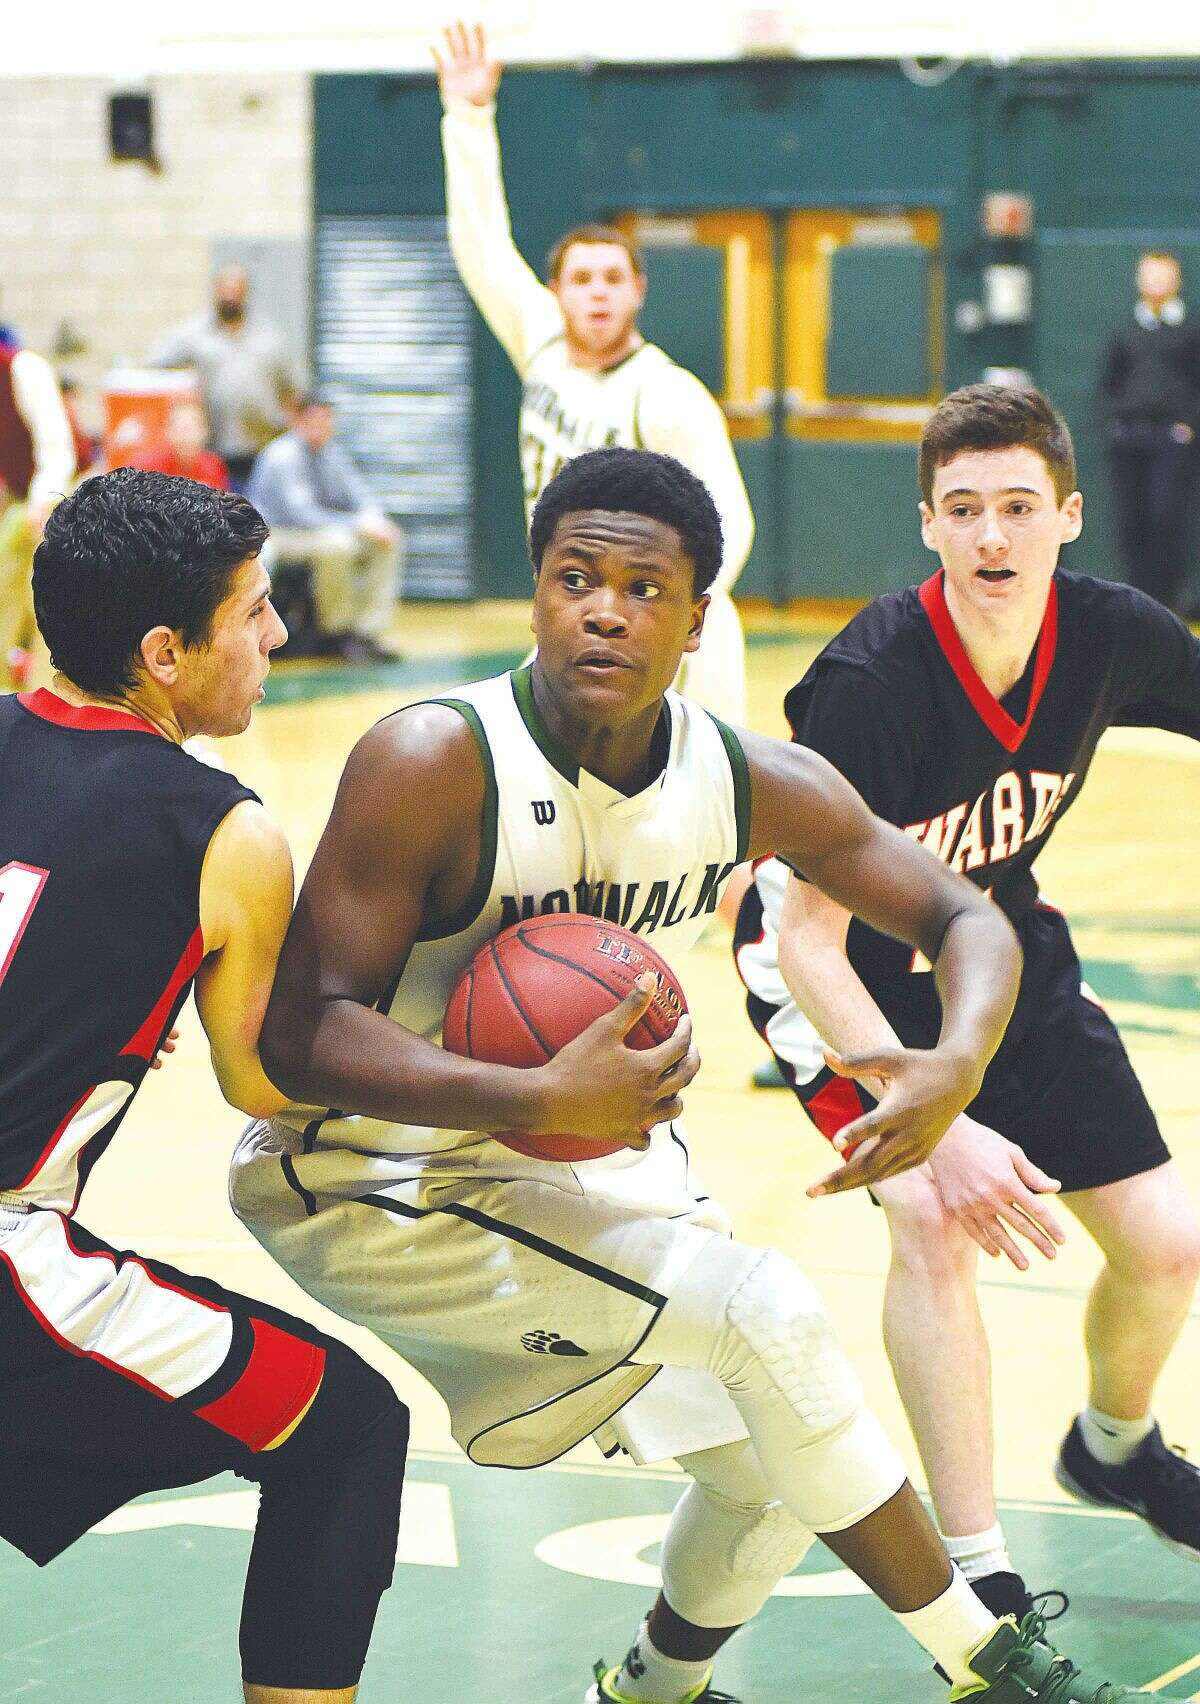 Hour photo/John Nash - Norwalk's LeVaughn Lewis, center, looks for space as Warde defenders move in during Monday's FCIAC boys basketball game at Scarso Gym in Norwalk.